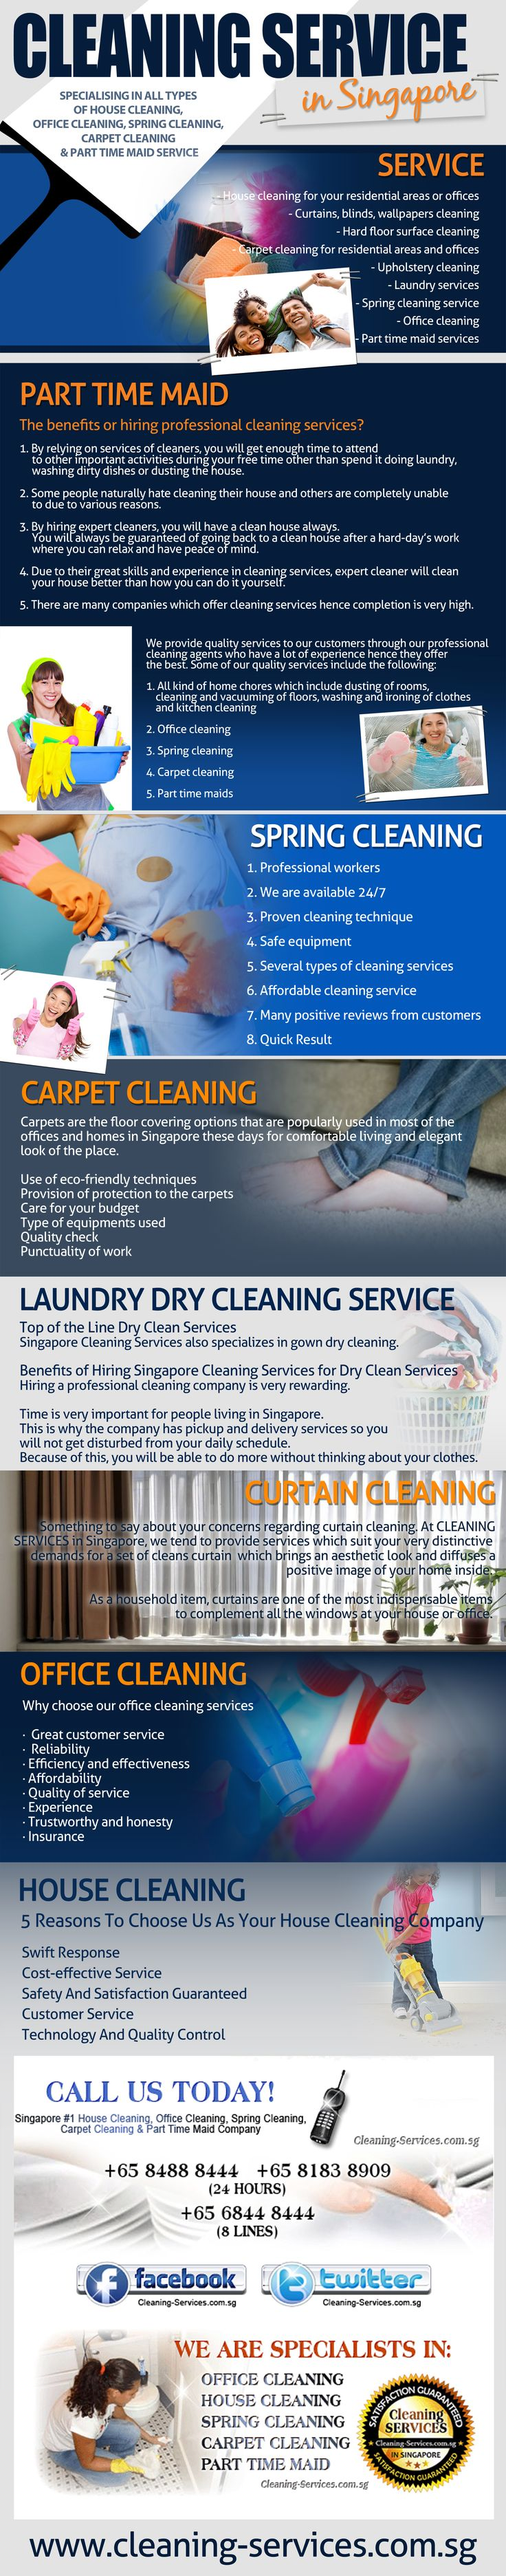 Building cleaning and maintenance service